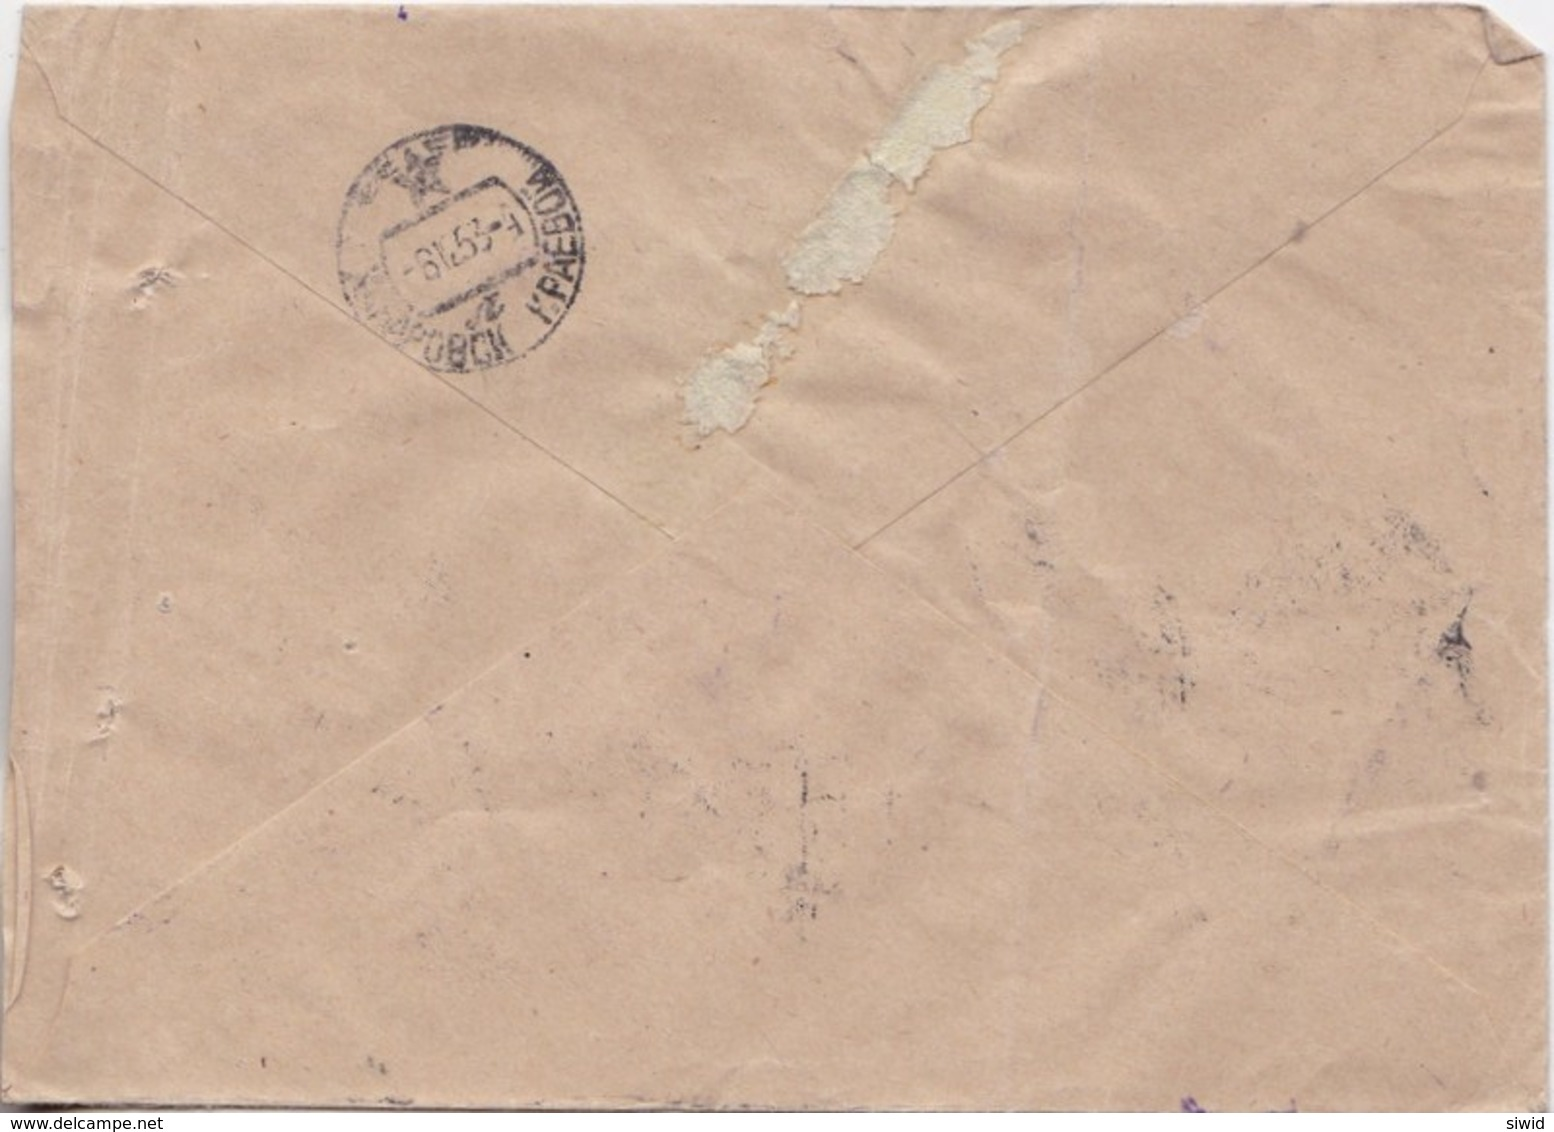 1953, Envelope, Mail: Panevezys Lithuania - Khabarovsk The Prosecl, NKVD, Moscow, Traces Of The Office - 1923-1991 USSR